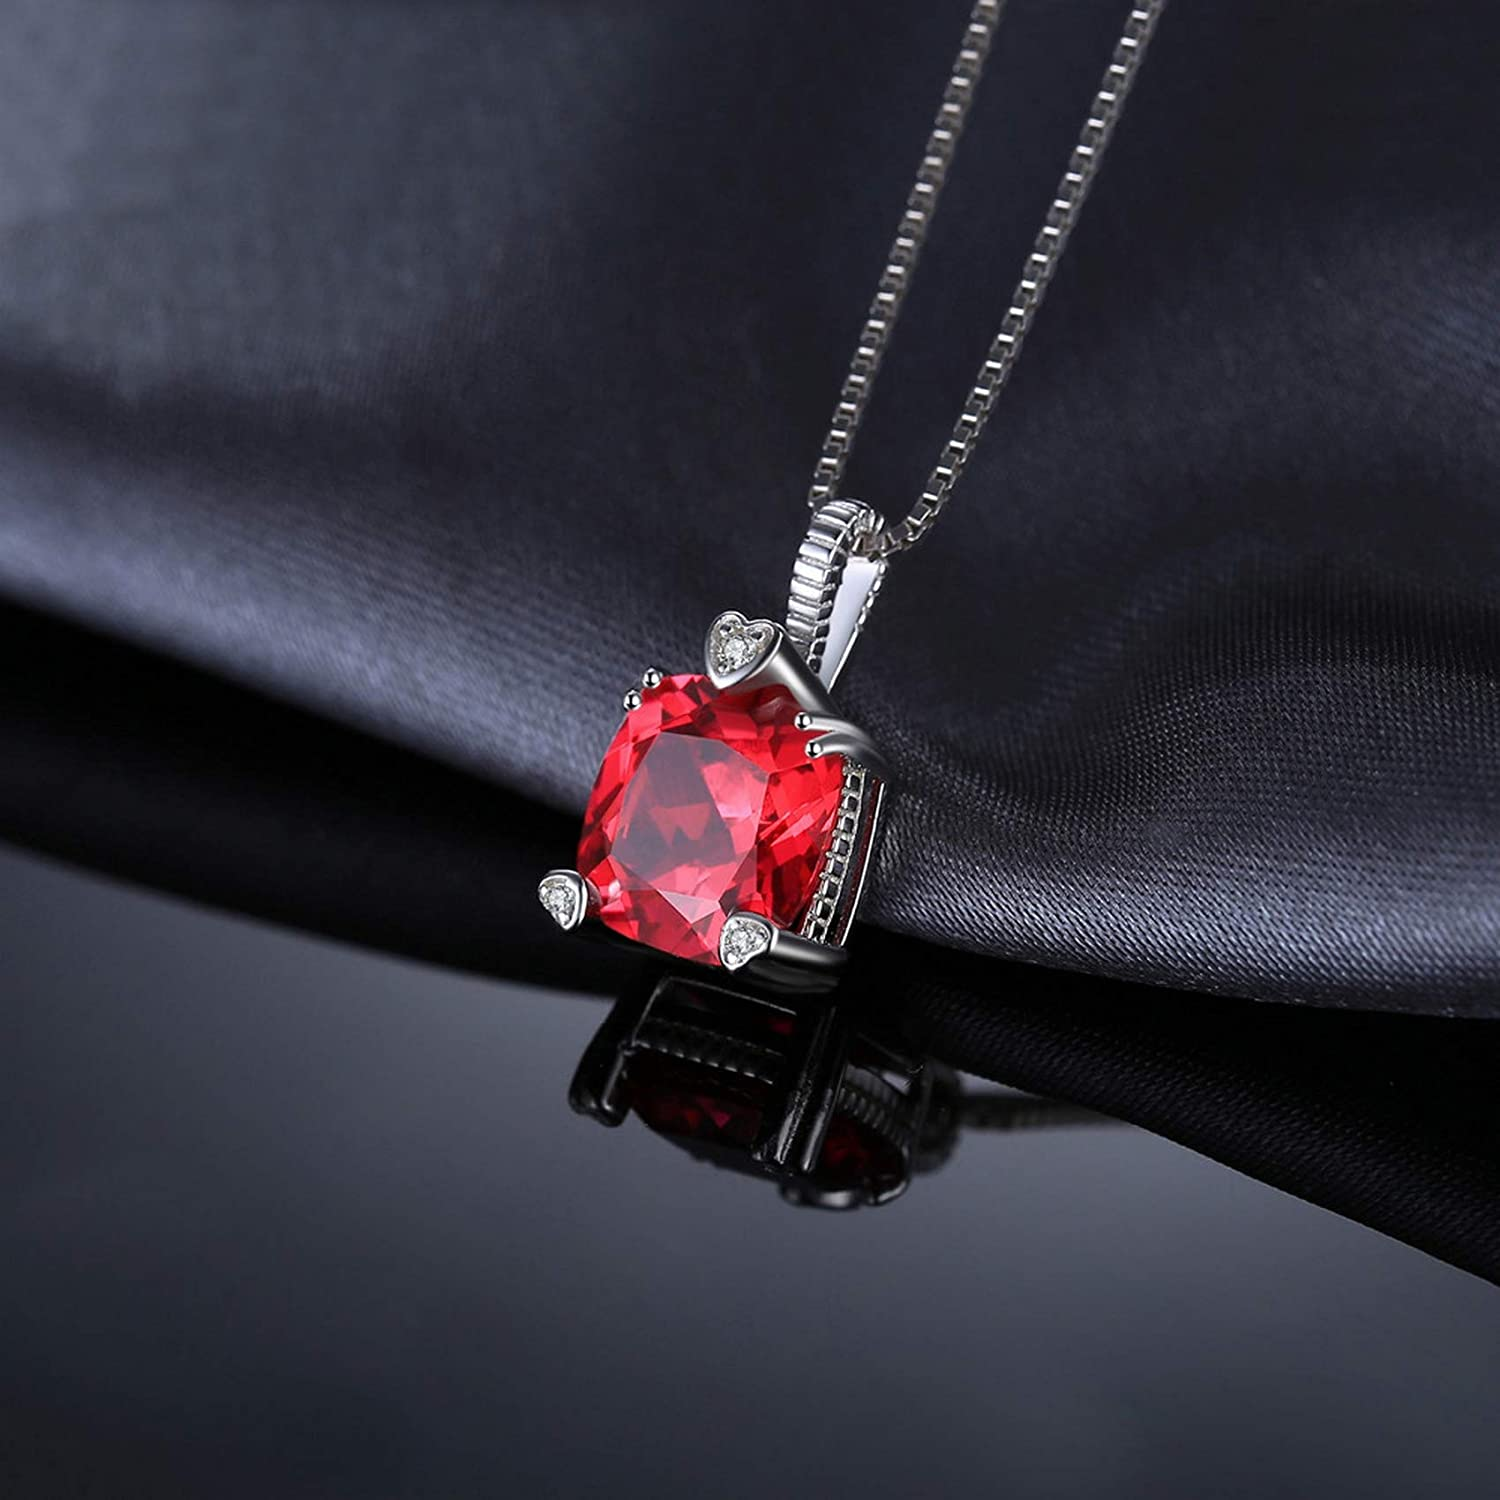 MMC Silver Necklaces 4.7ct Square Ruby Wedding Style Womens Pendants